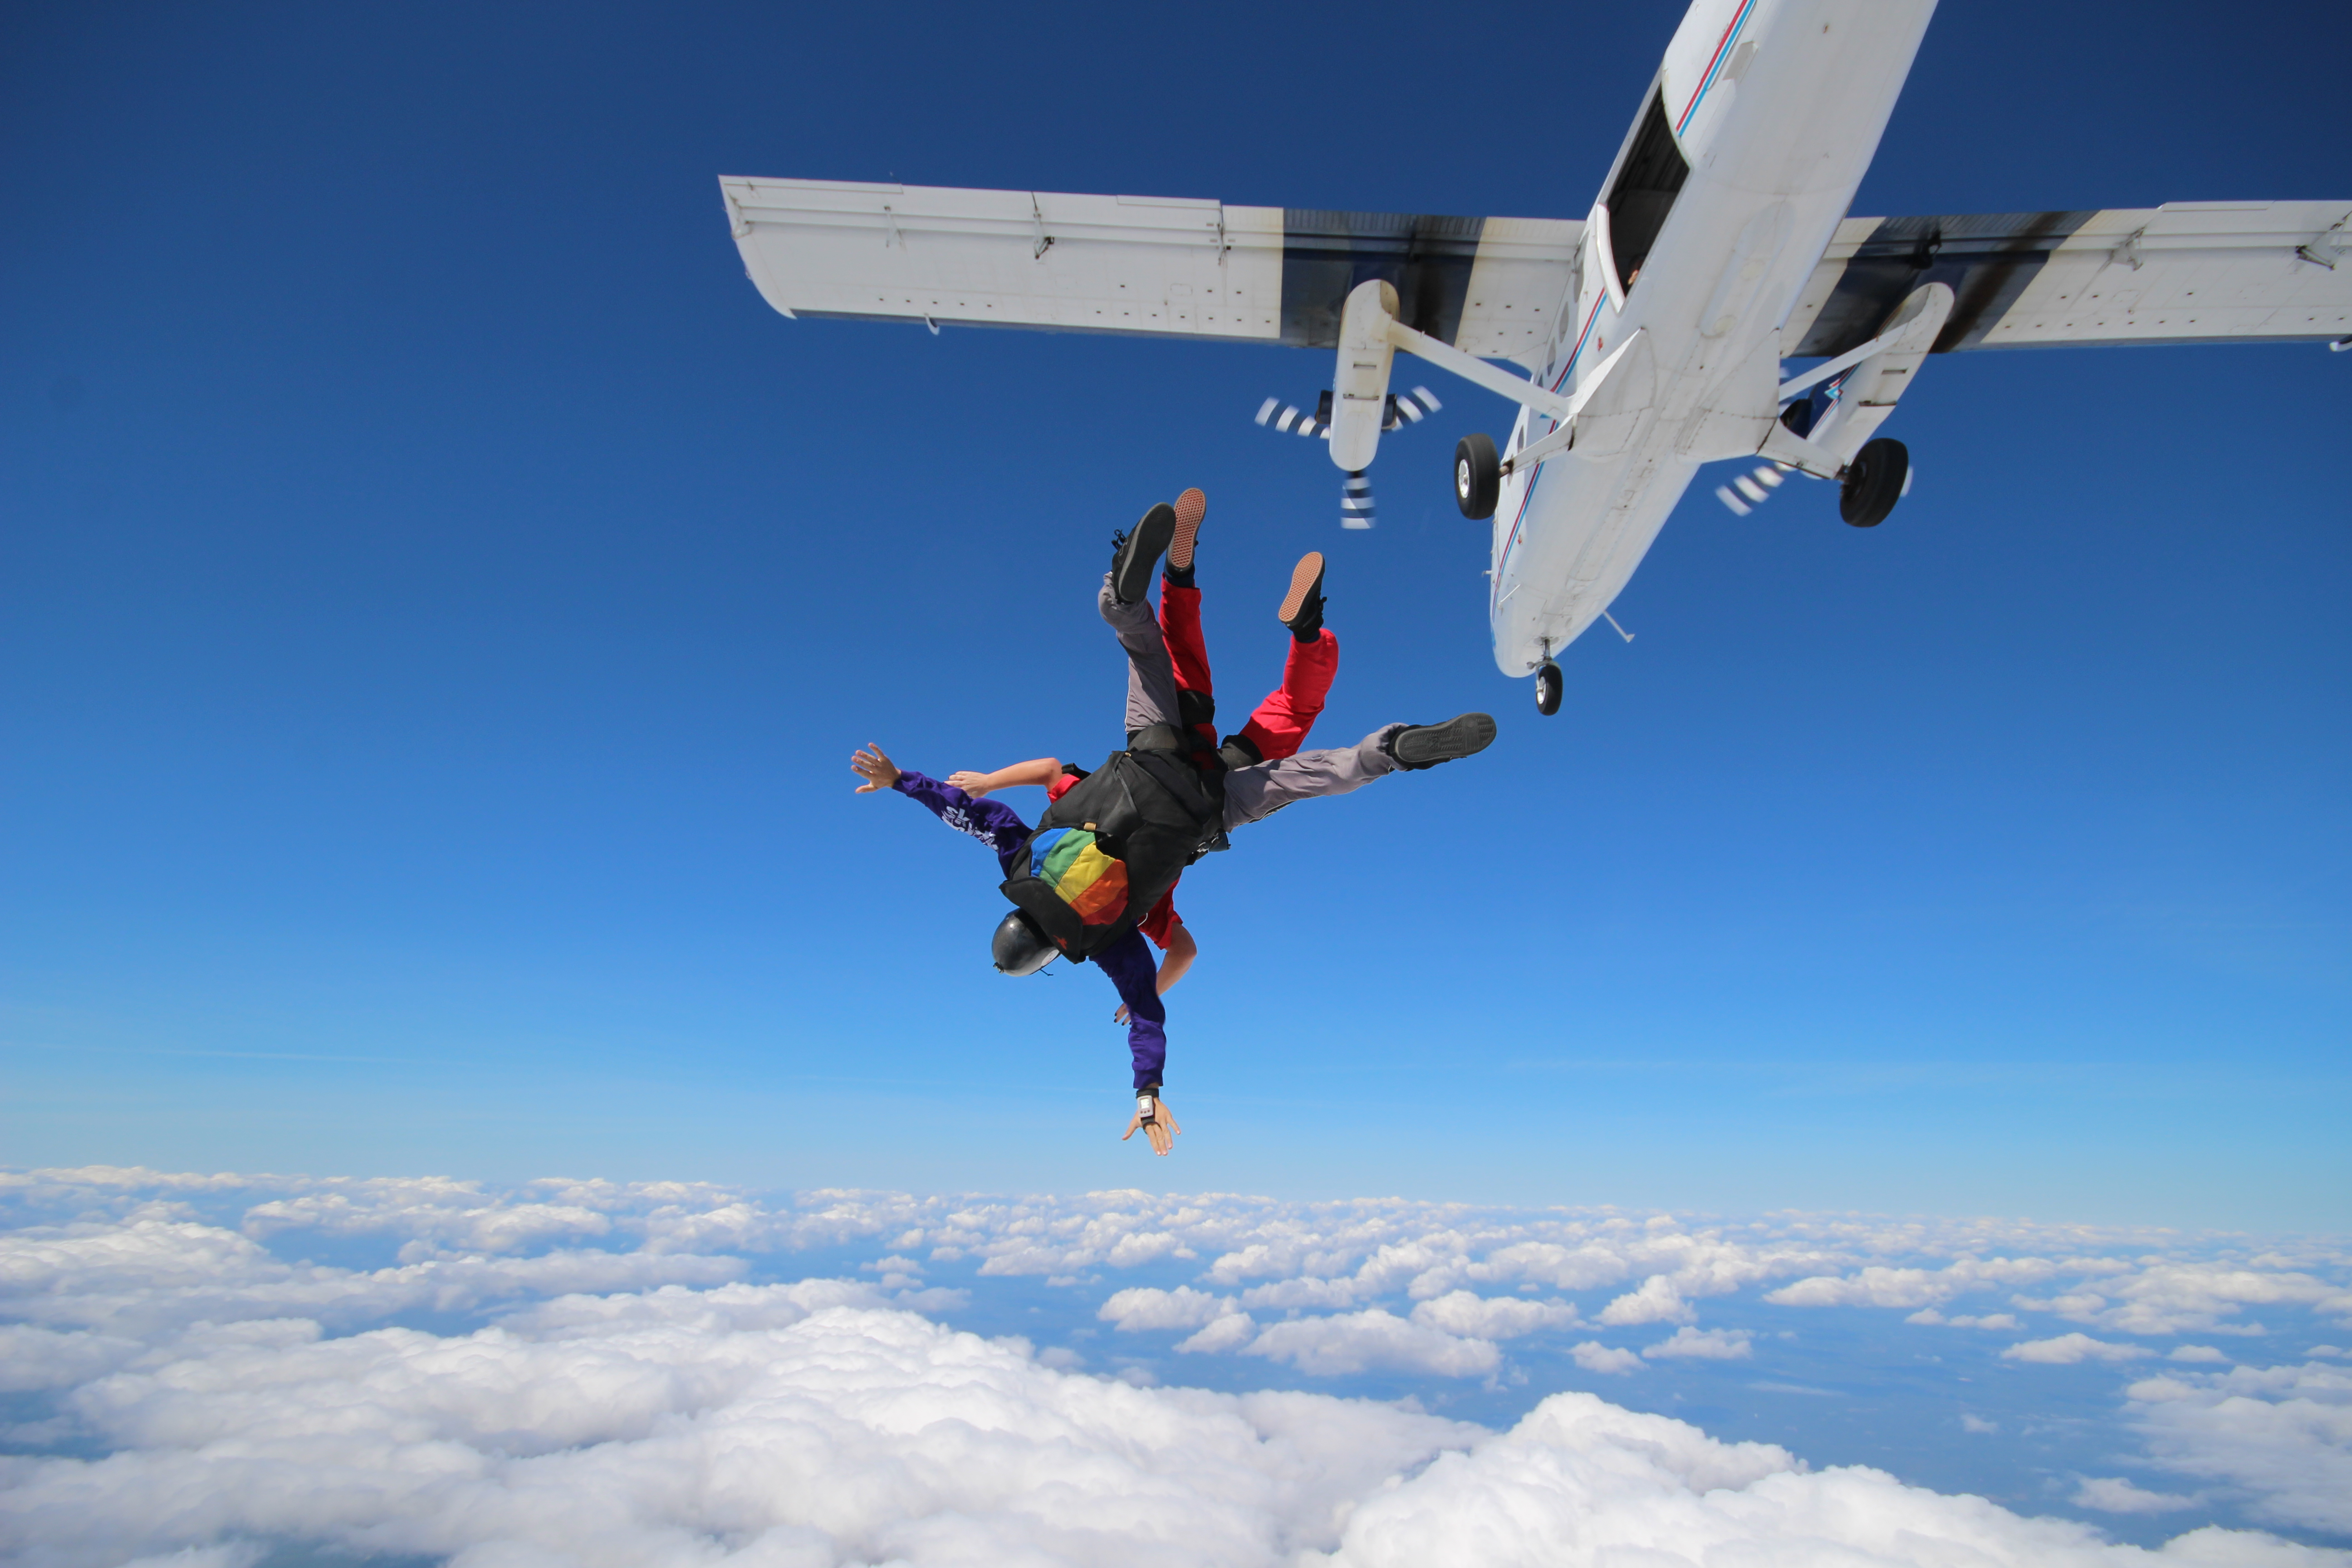 What I Really Think About Skydiving